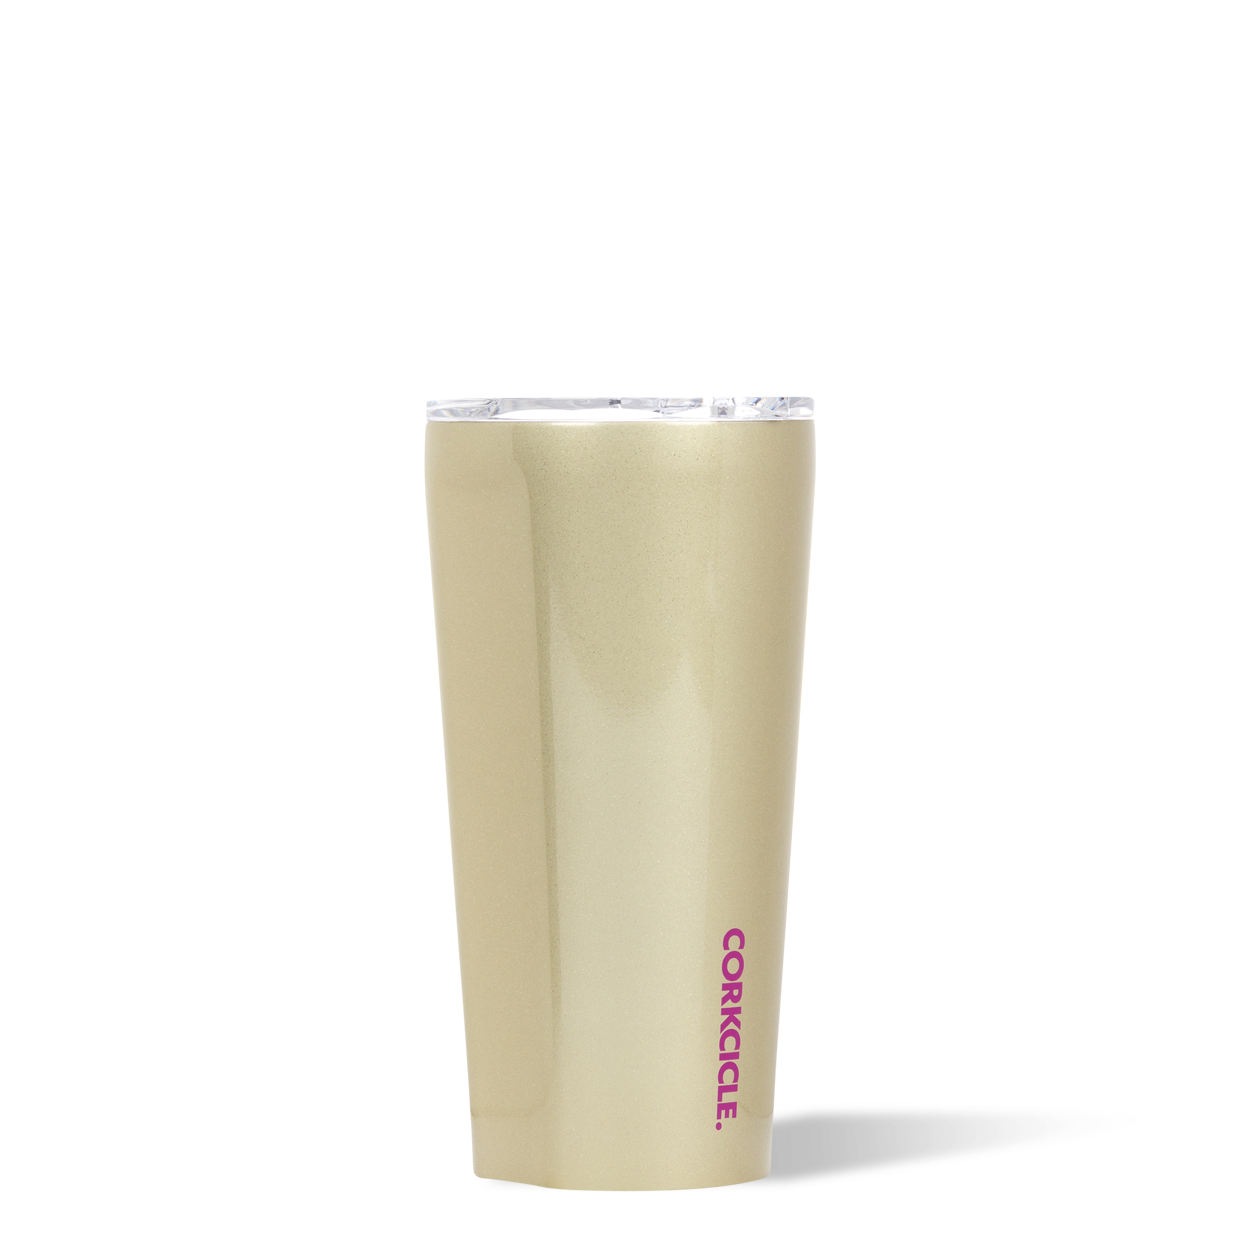 Corkcicle Glam Gold Tumbler